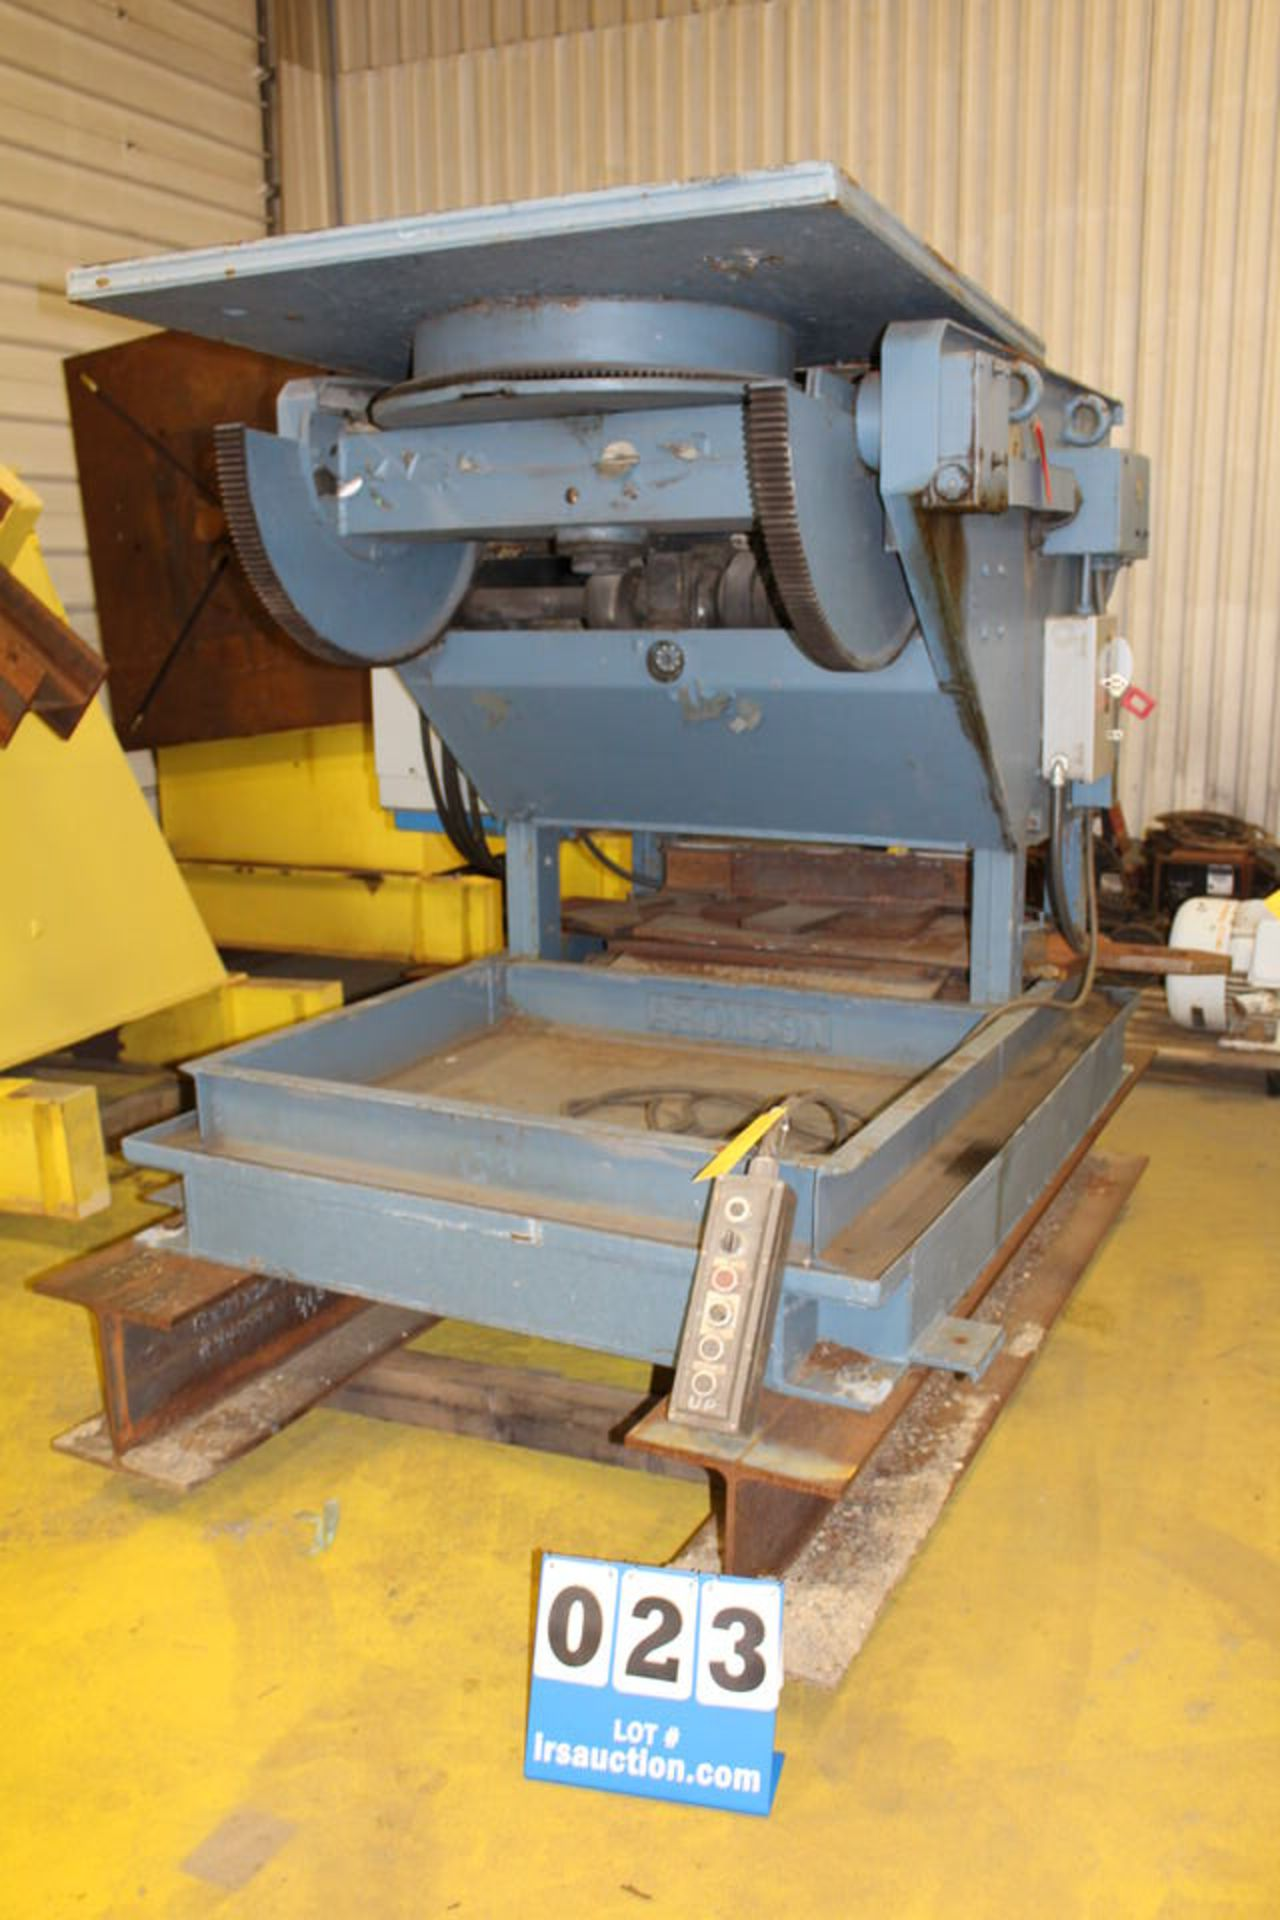 Lot 23 - ARONSON WELDING POSITIONER, MDL: HD600S, 4' X 4' FACEPLATE, TILTING, 6,000 LB CAP (LOCATION: 4081